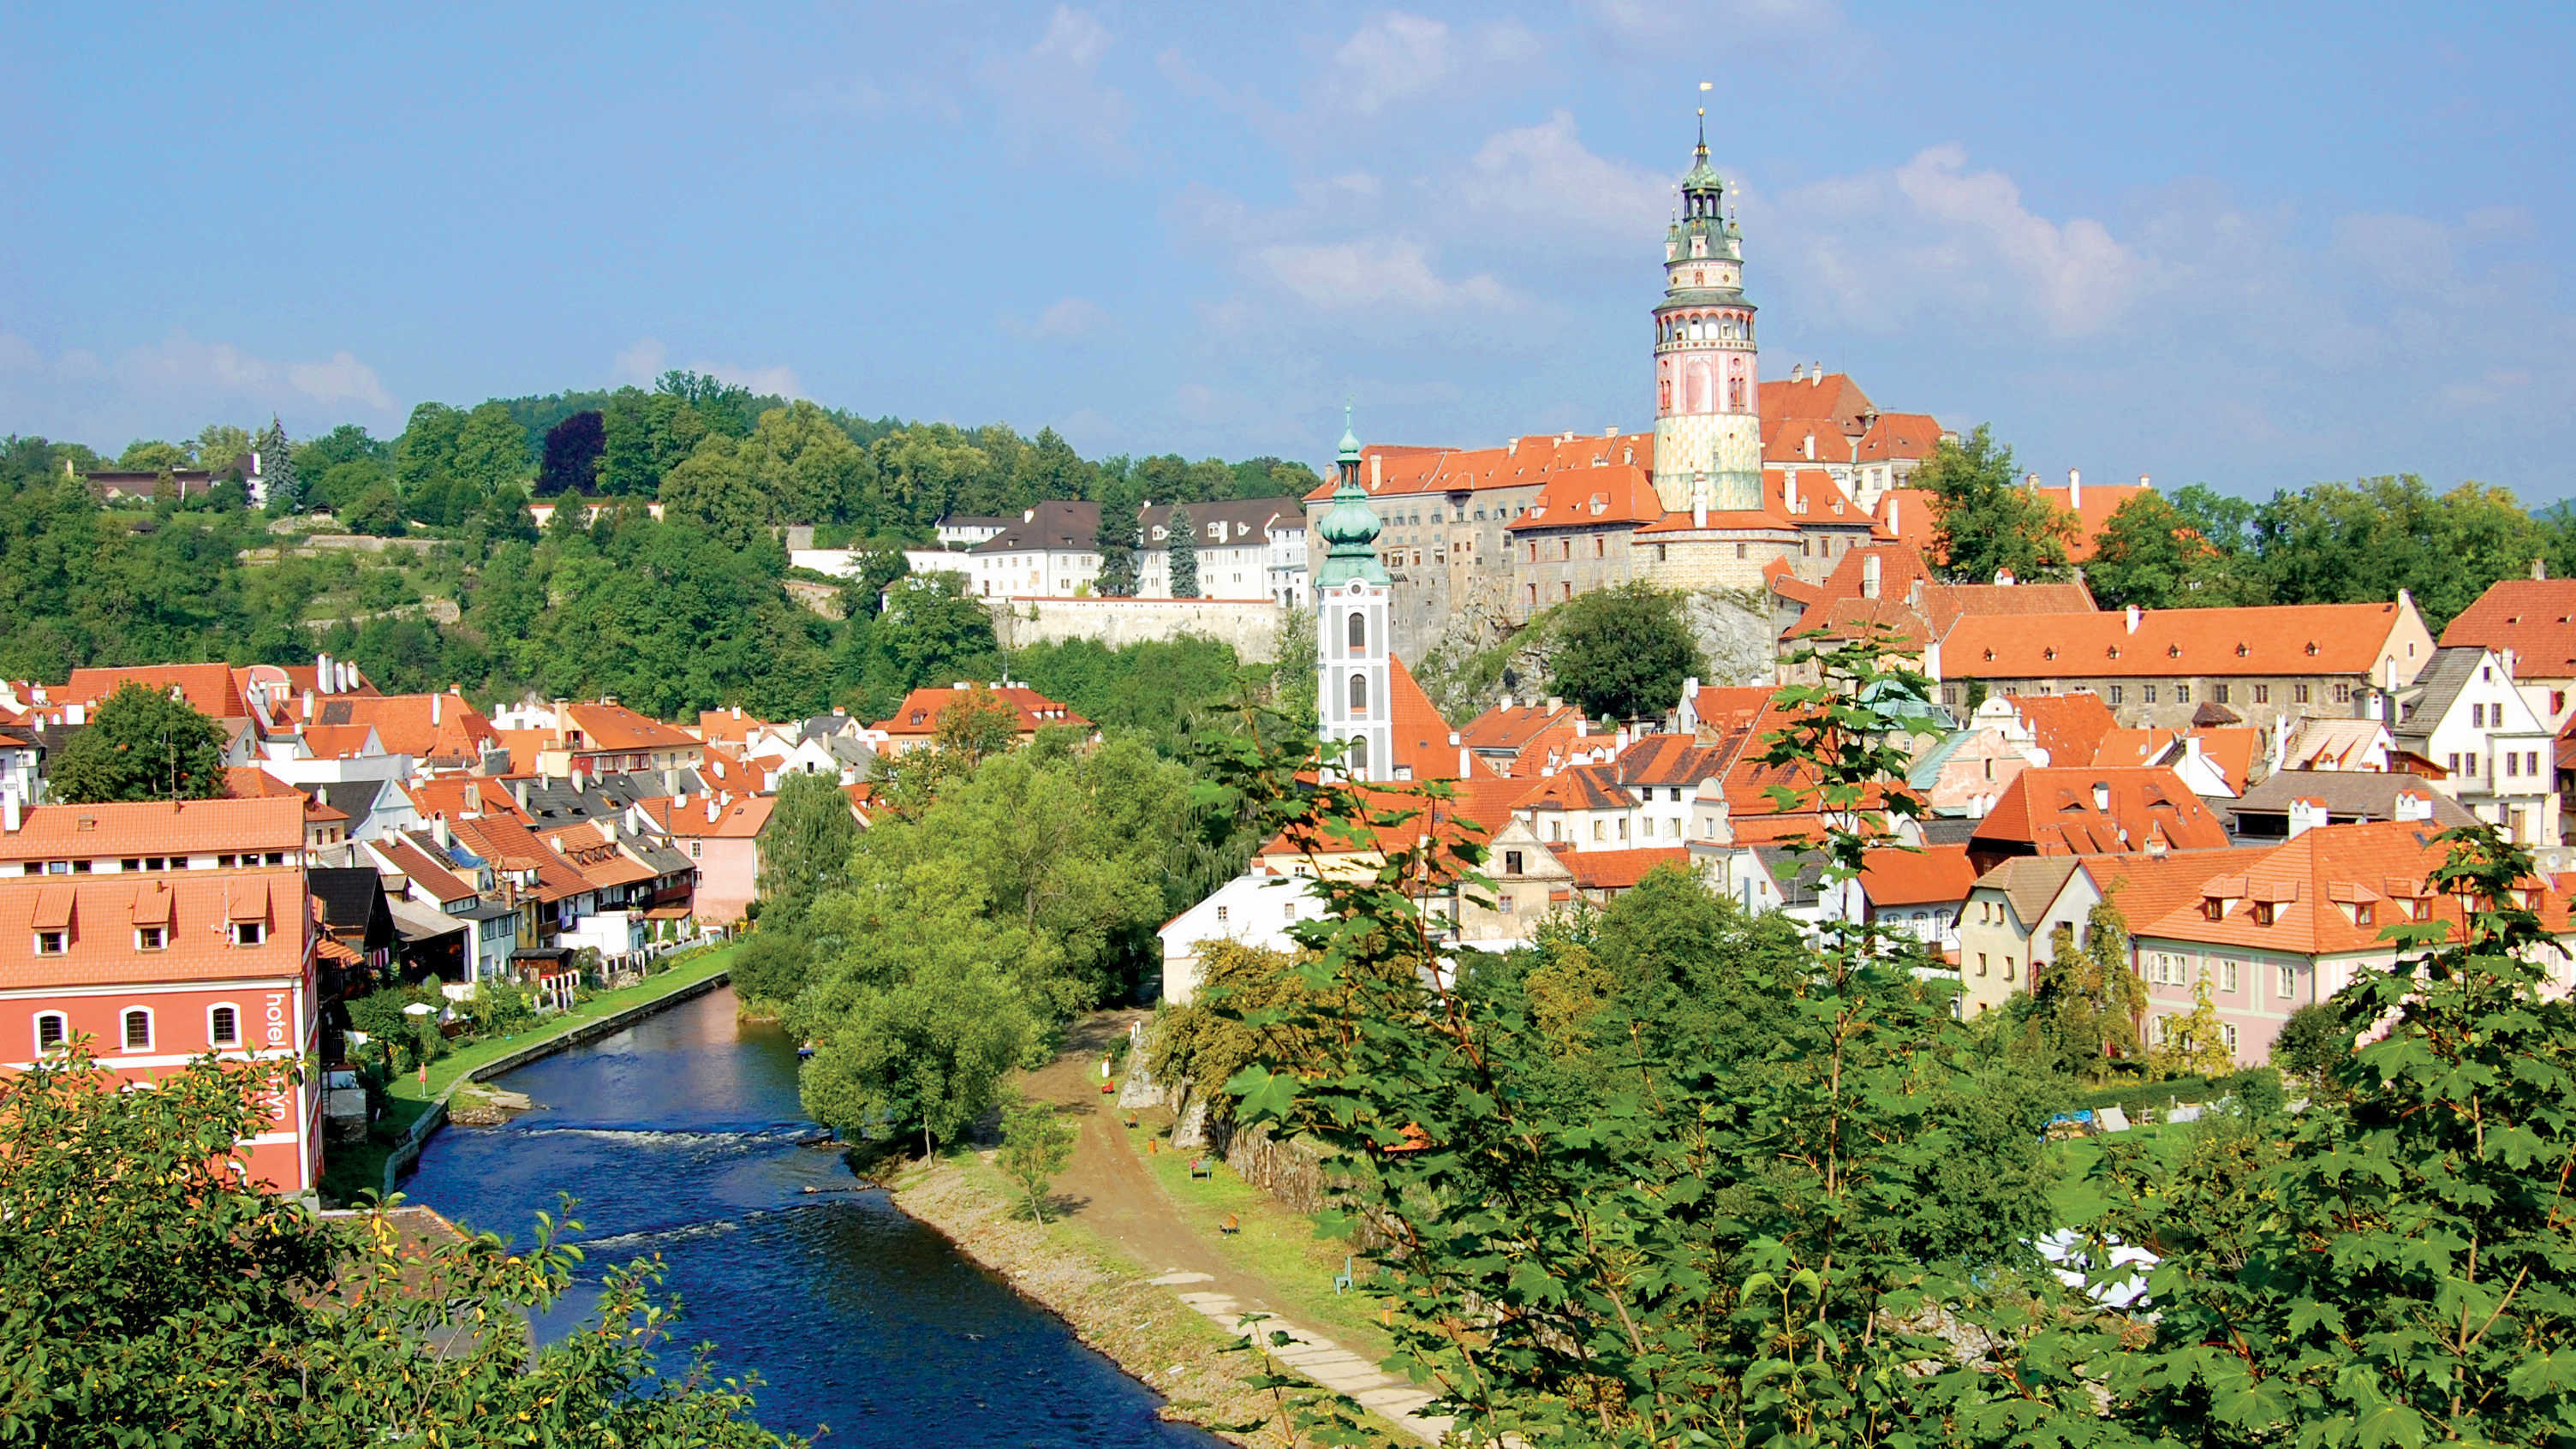 View over Cesky Krumlov, Czech Republic